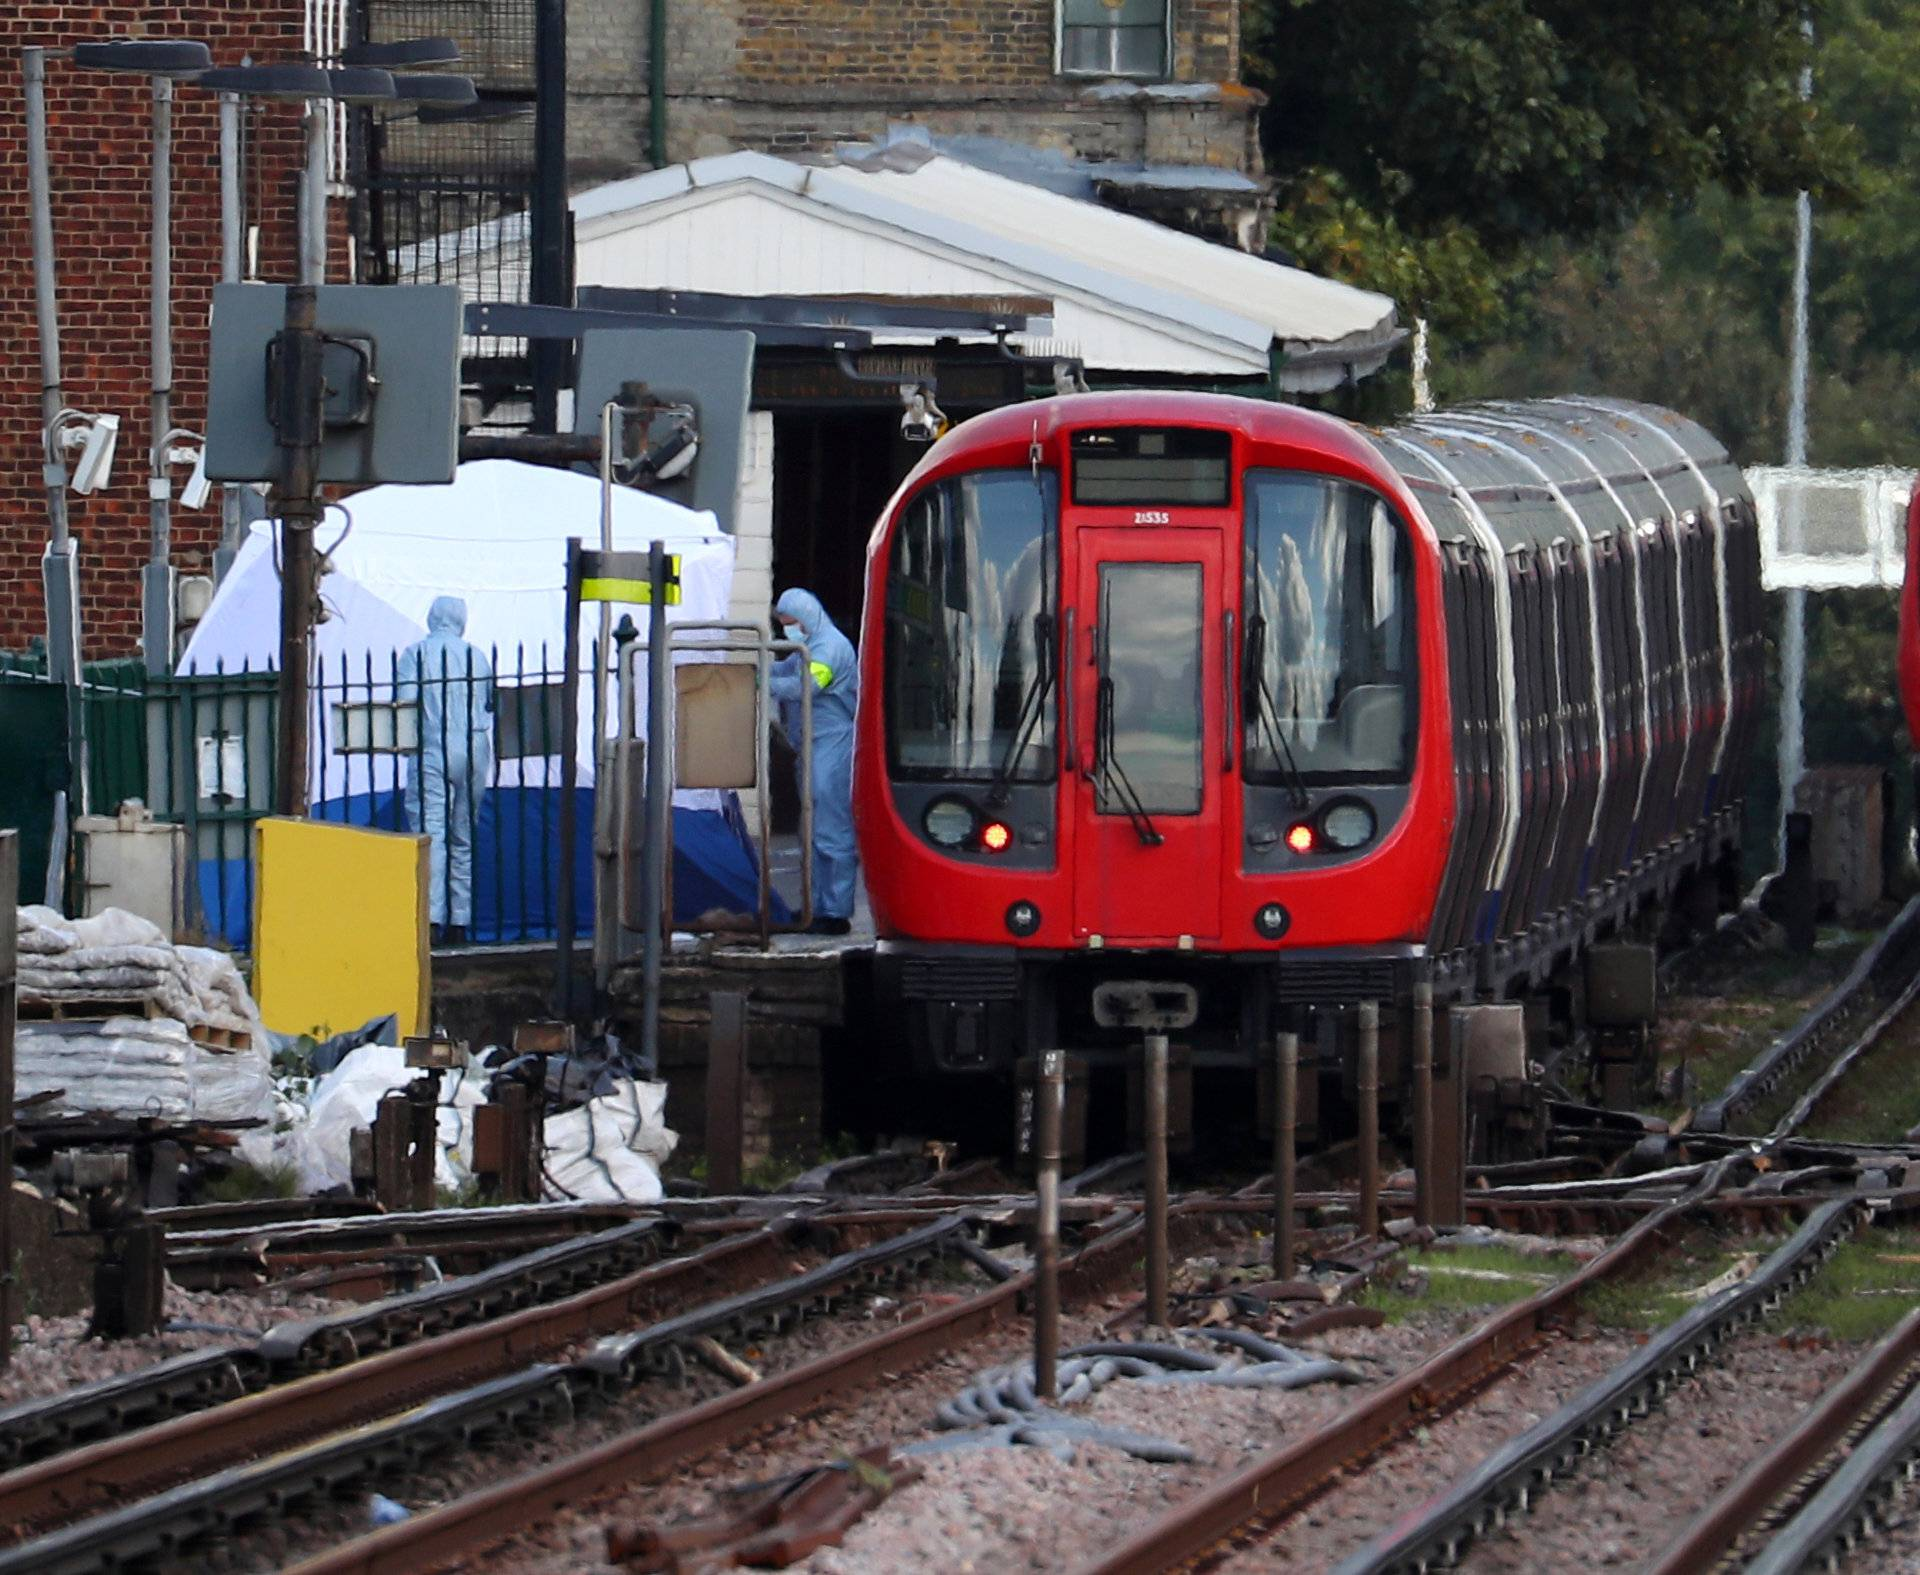 Forensic investigators search on the platform at Parsons Green tube station in London